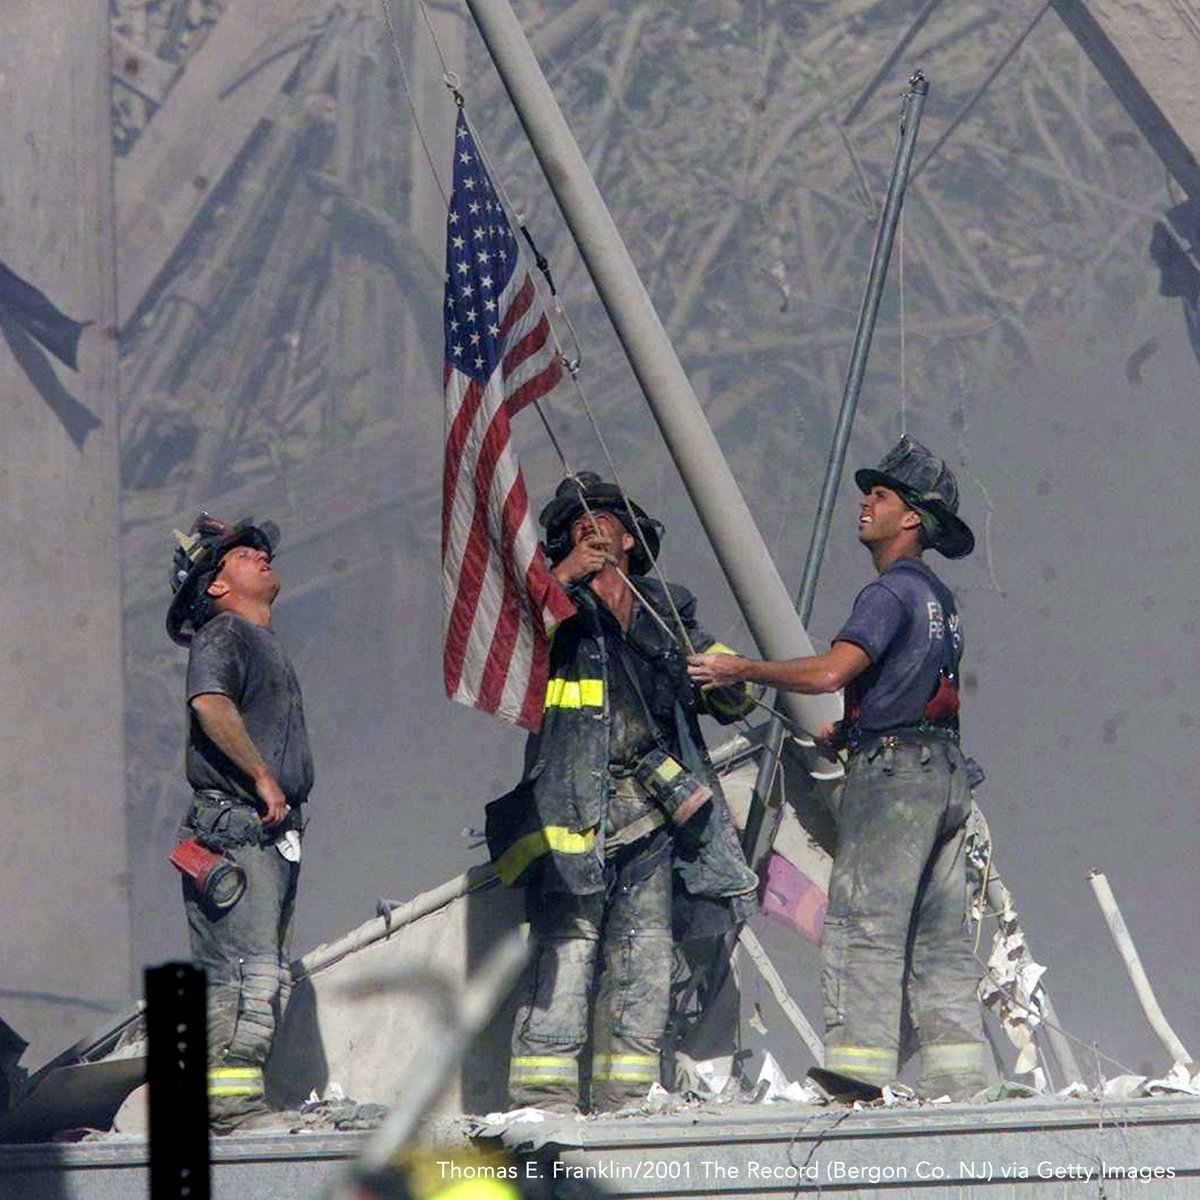 We remember, and never forget, those lost and those who helped us recover from September 11th. #NeverForget ���� https://t.co/ByCPi1unQI